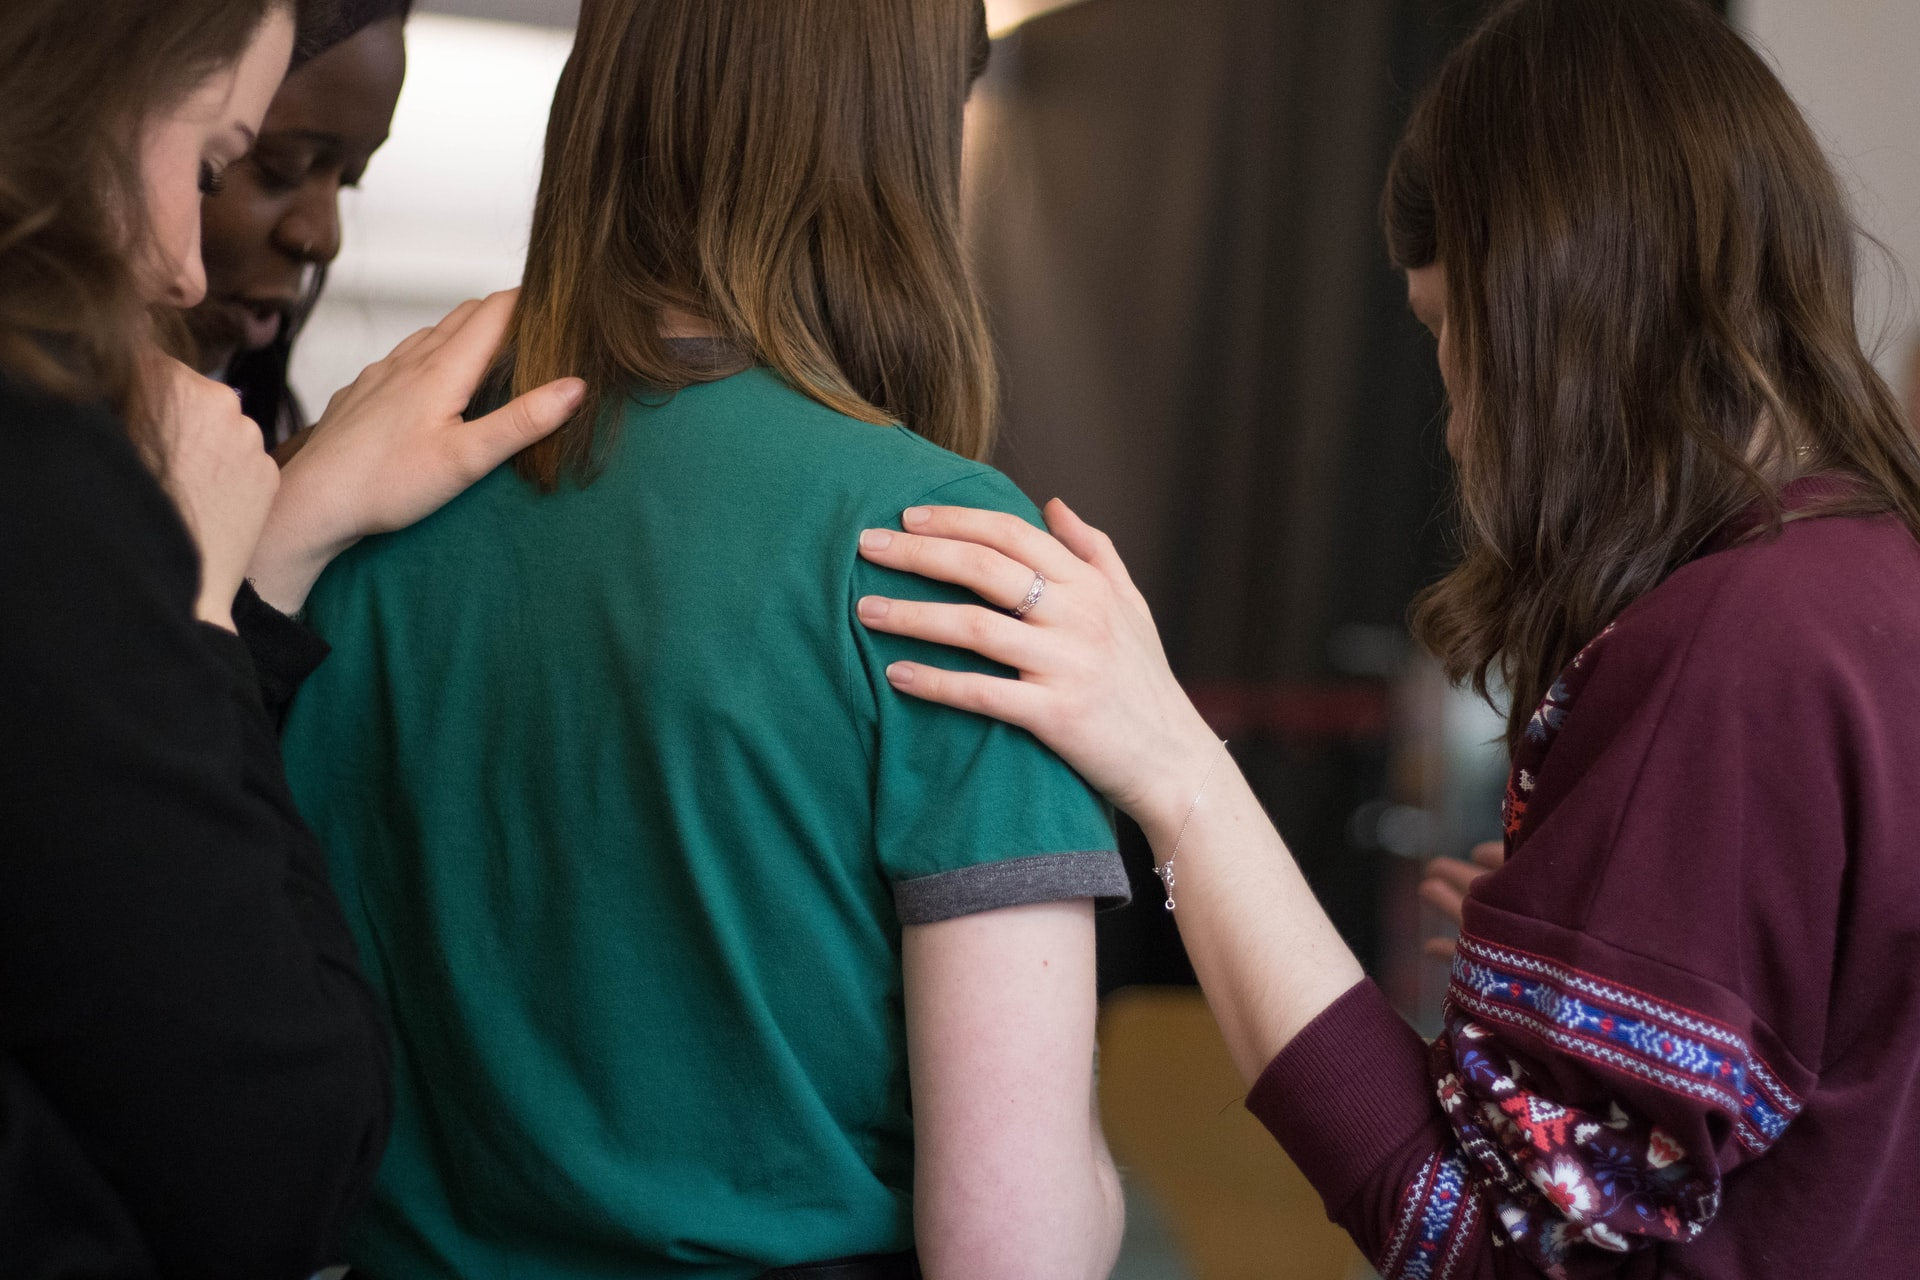 Both Judgement and Compassion shown to a Women being comforted by her friends.